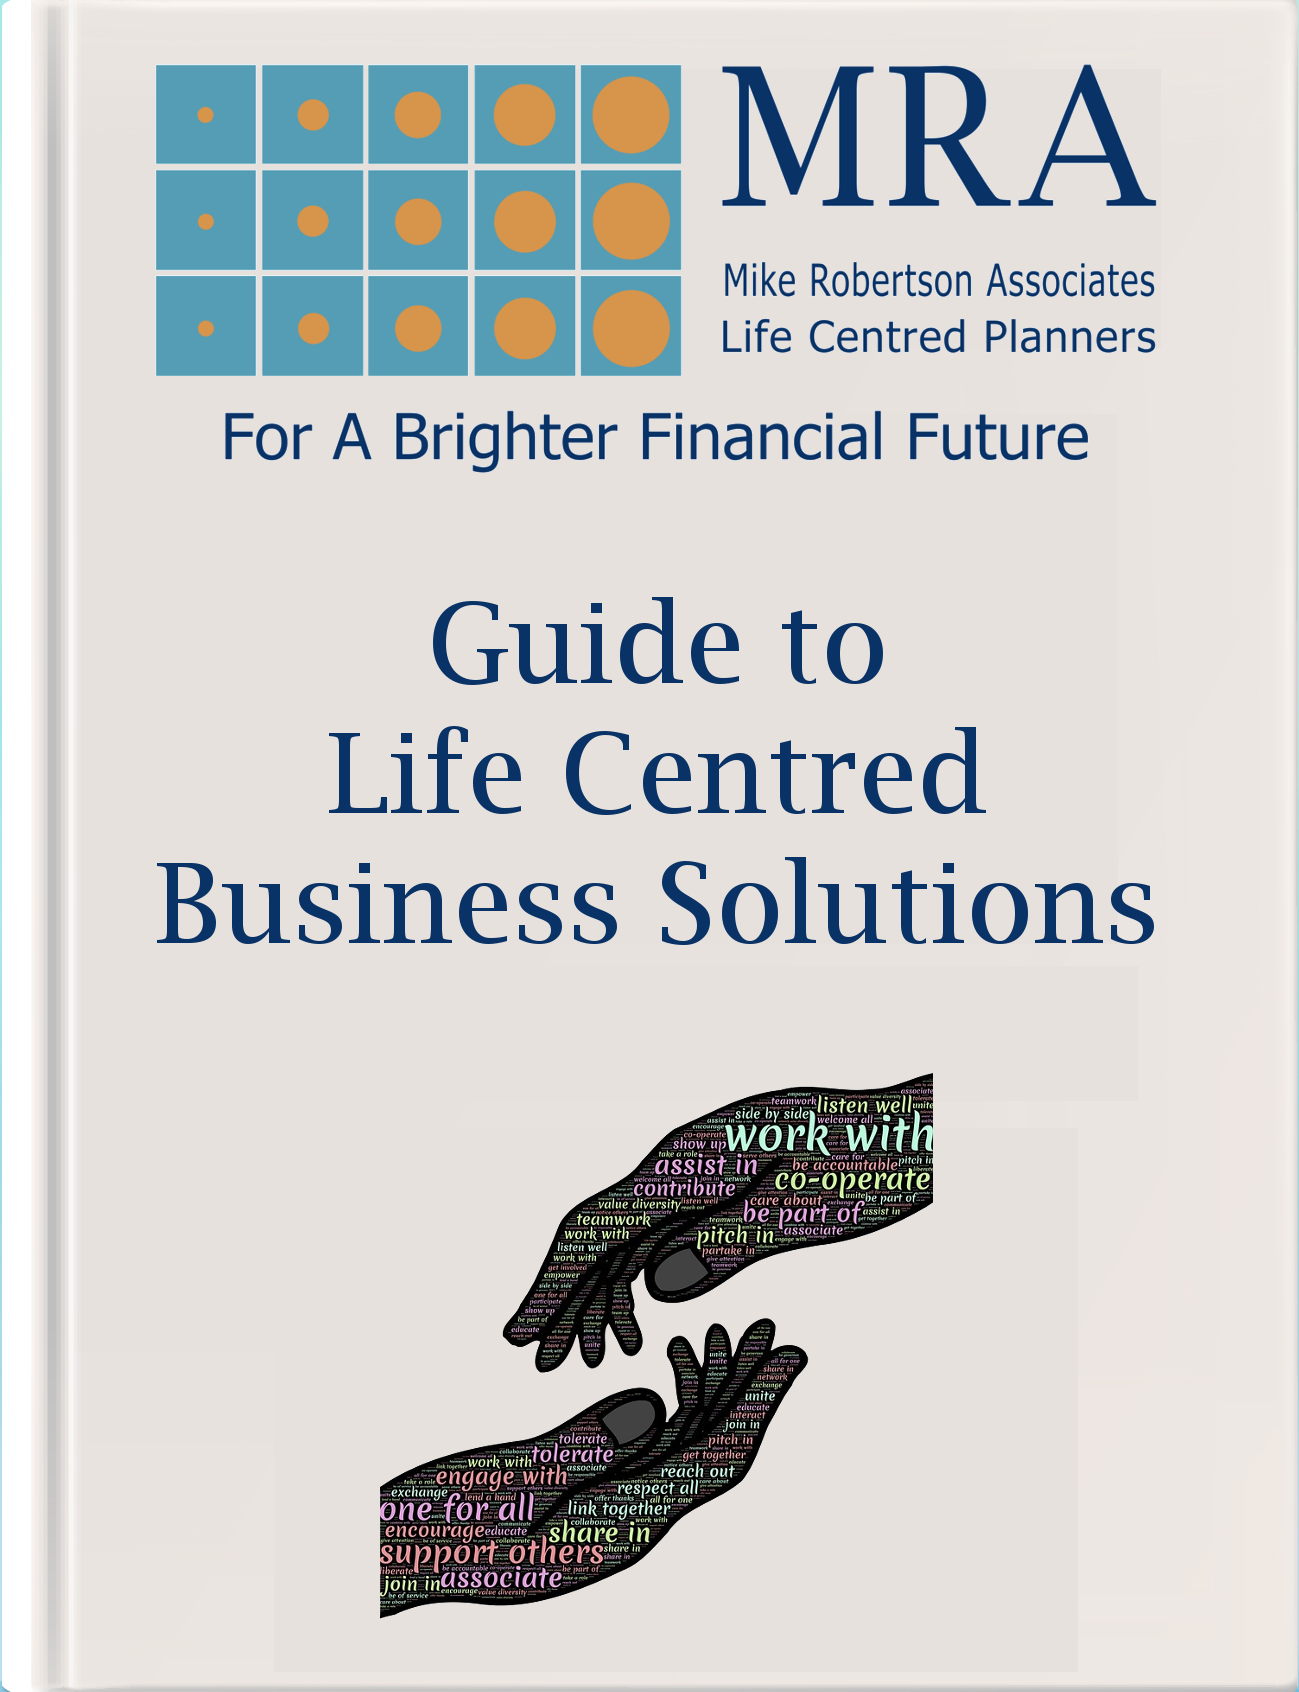 Download our Guide to Business Assistance